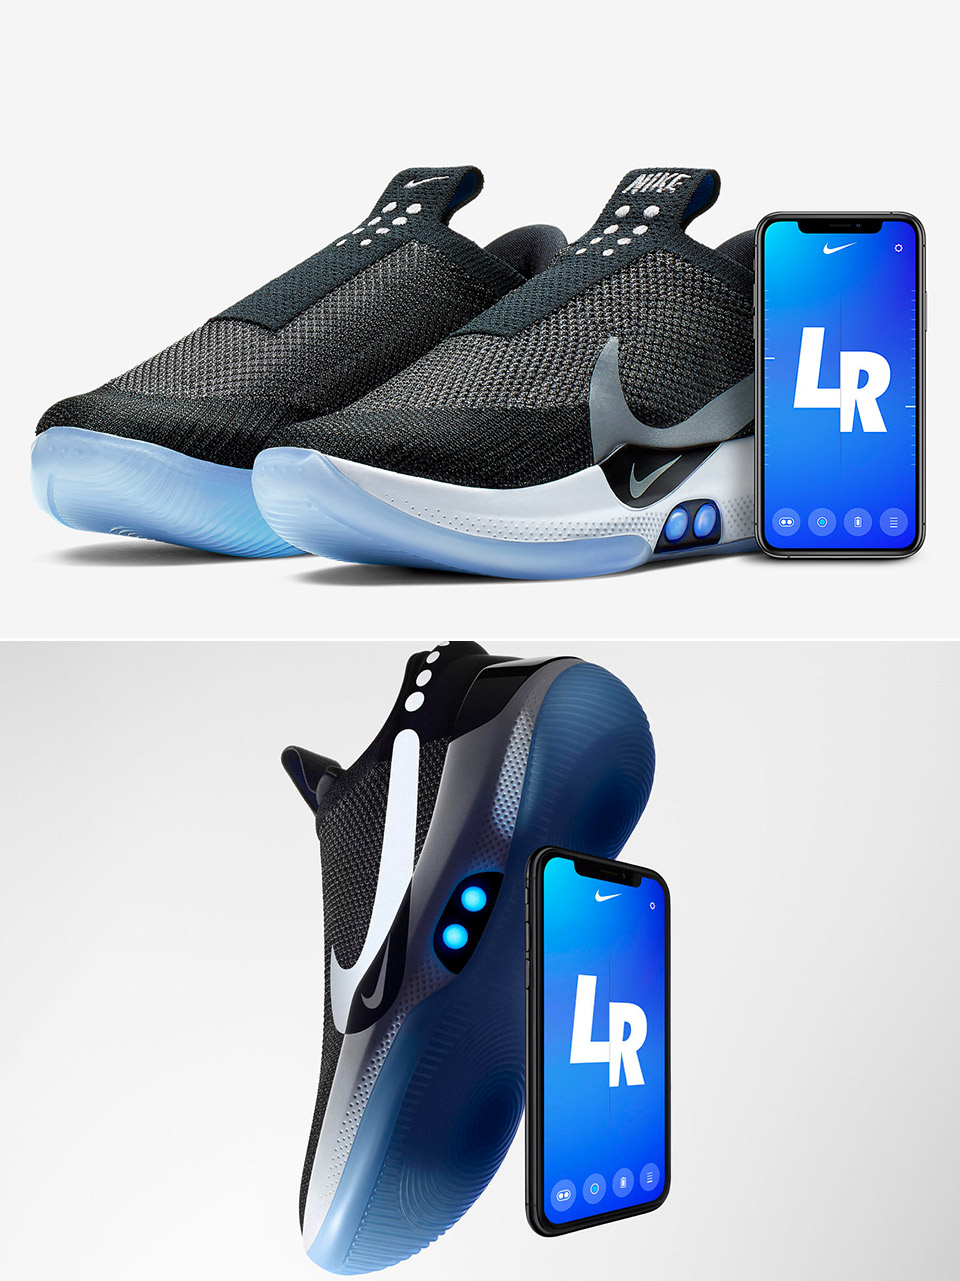 Nike Adapt BB Review